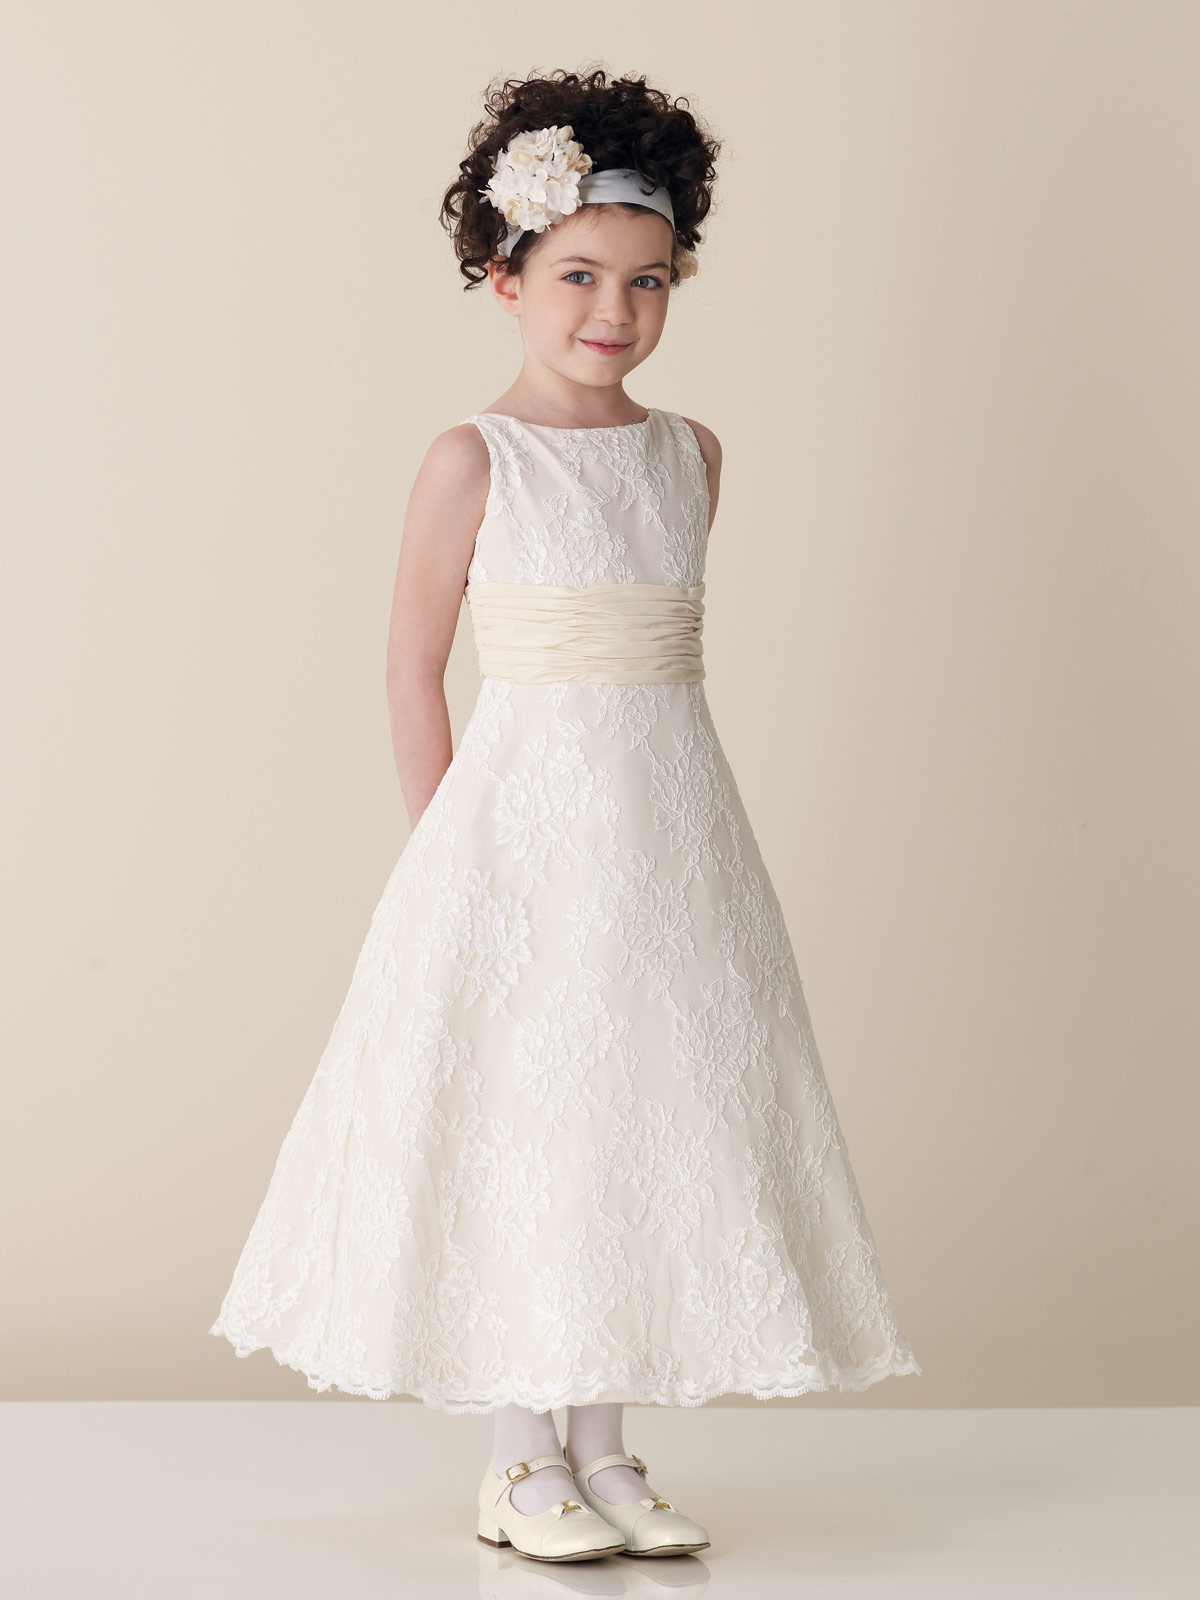 wedding dresses for kids kids wedding dresses 15 | Ball gowns ...